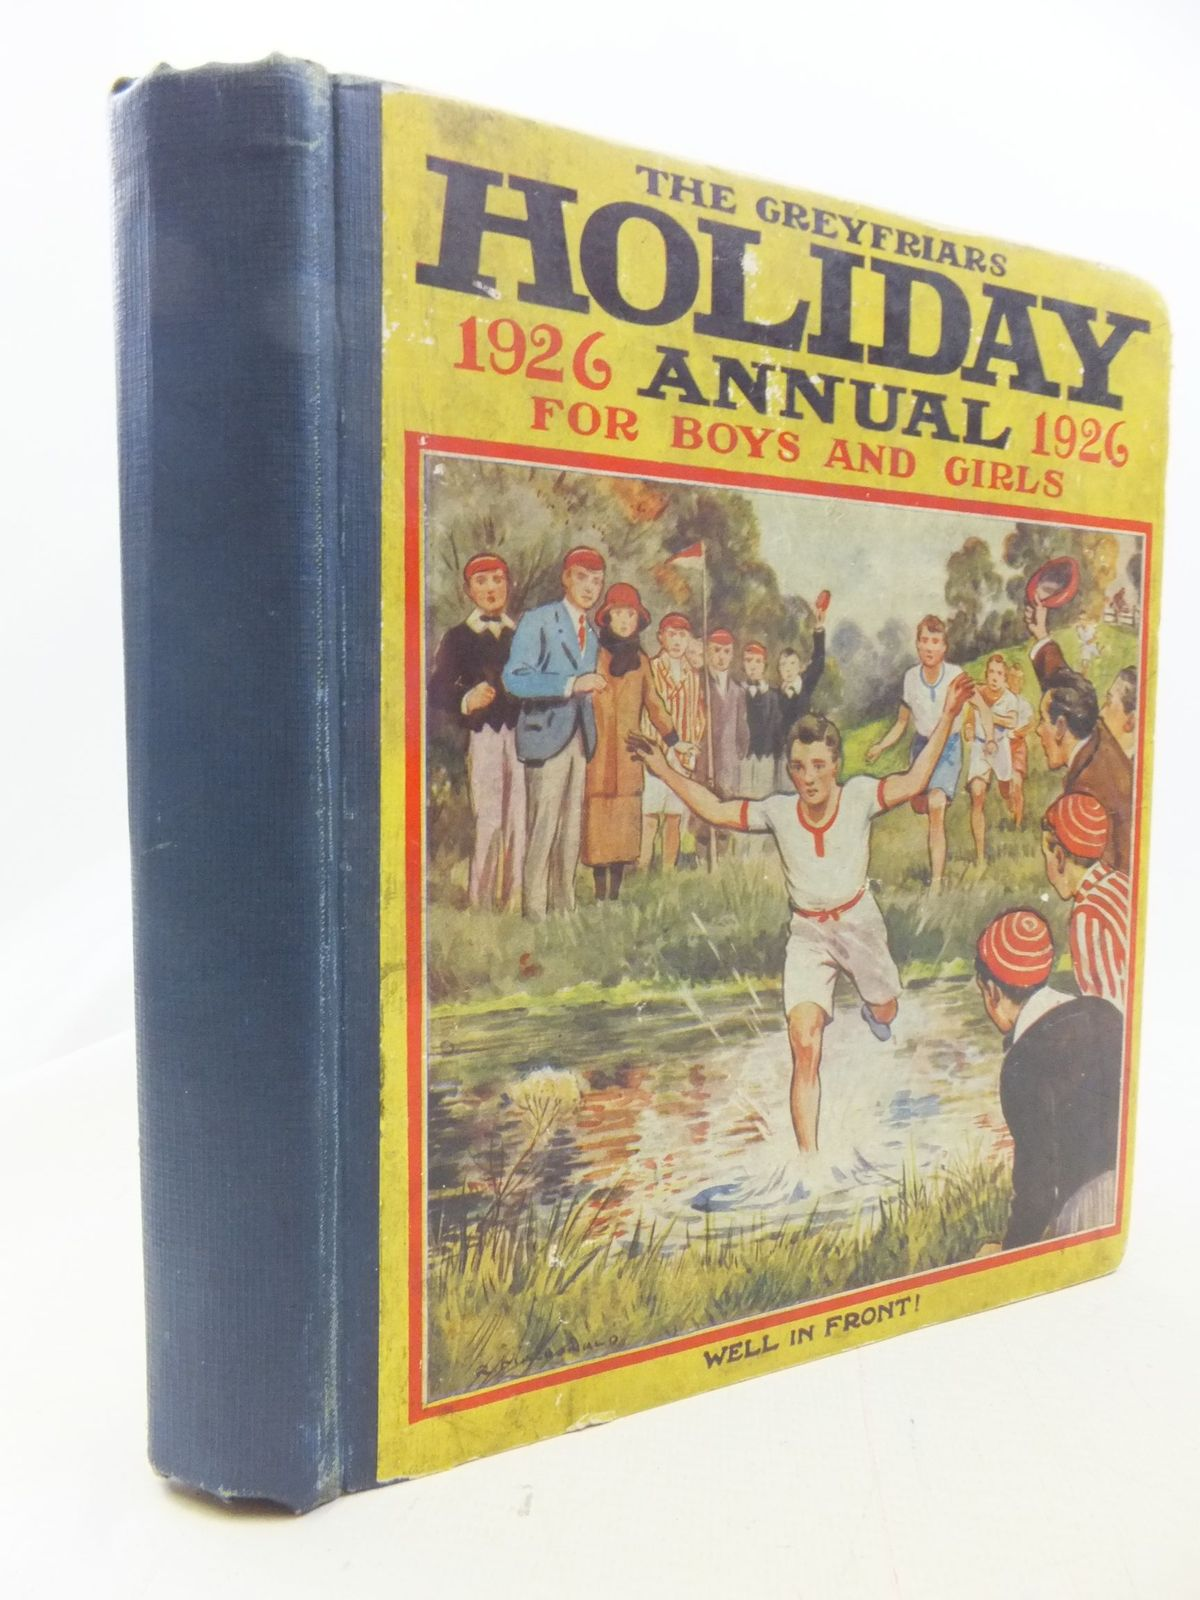 Photo of THE GREYFRIARS HOLIDAY ANNUAL 1926 written by Richards, Frank published by The Fleetway House (STOCK CODE: 1711348)  for sale by Stella & Rose's Books